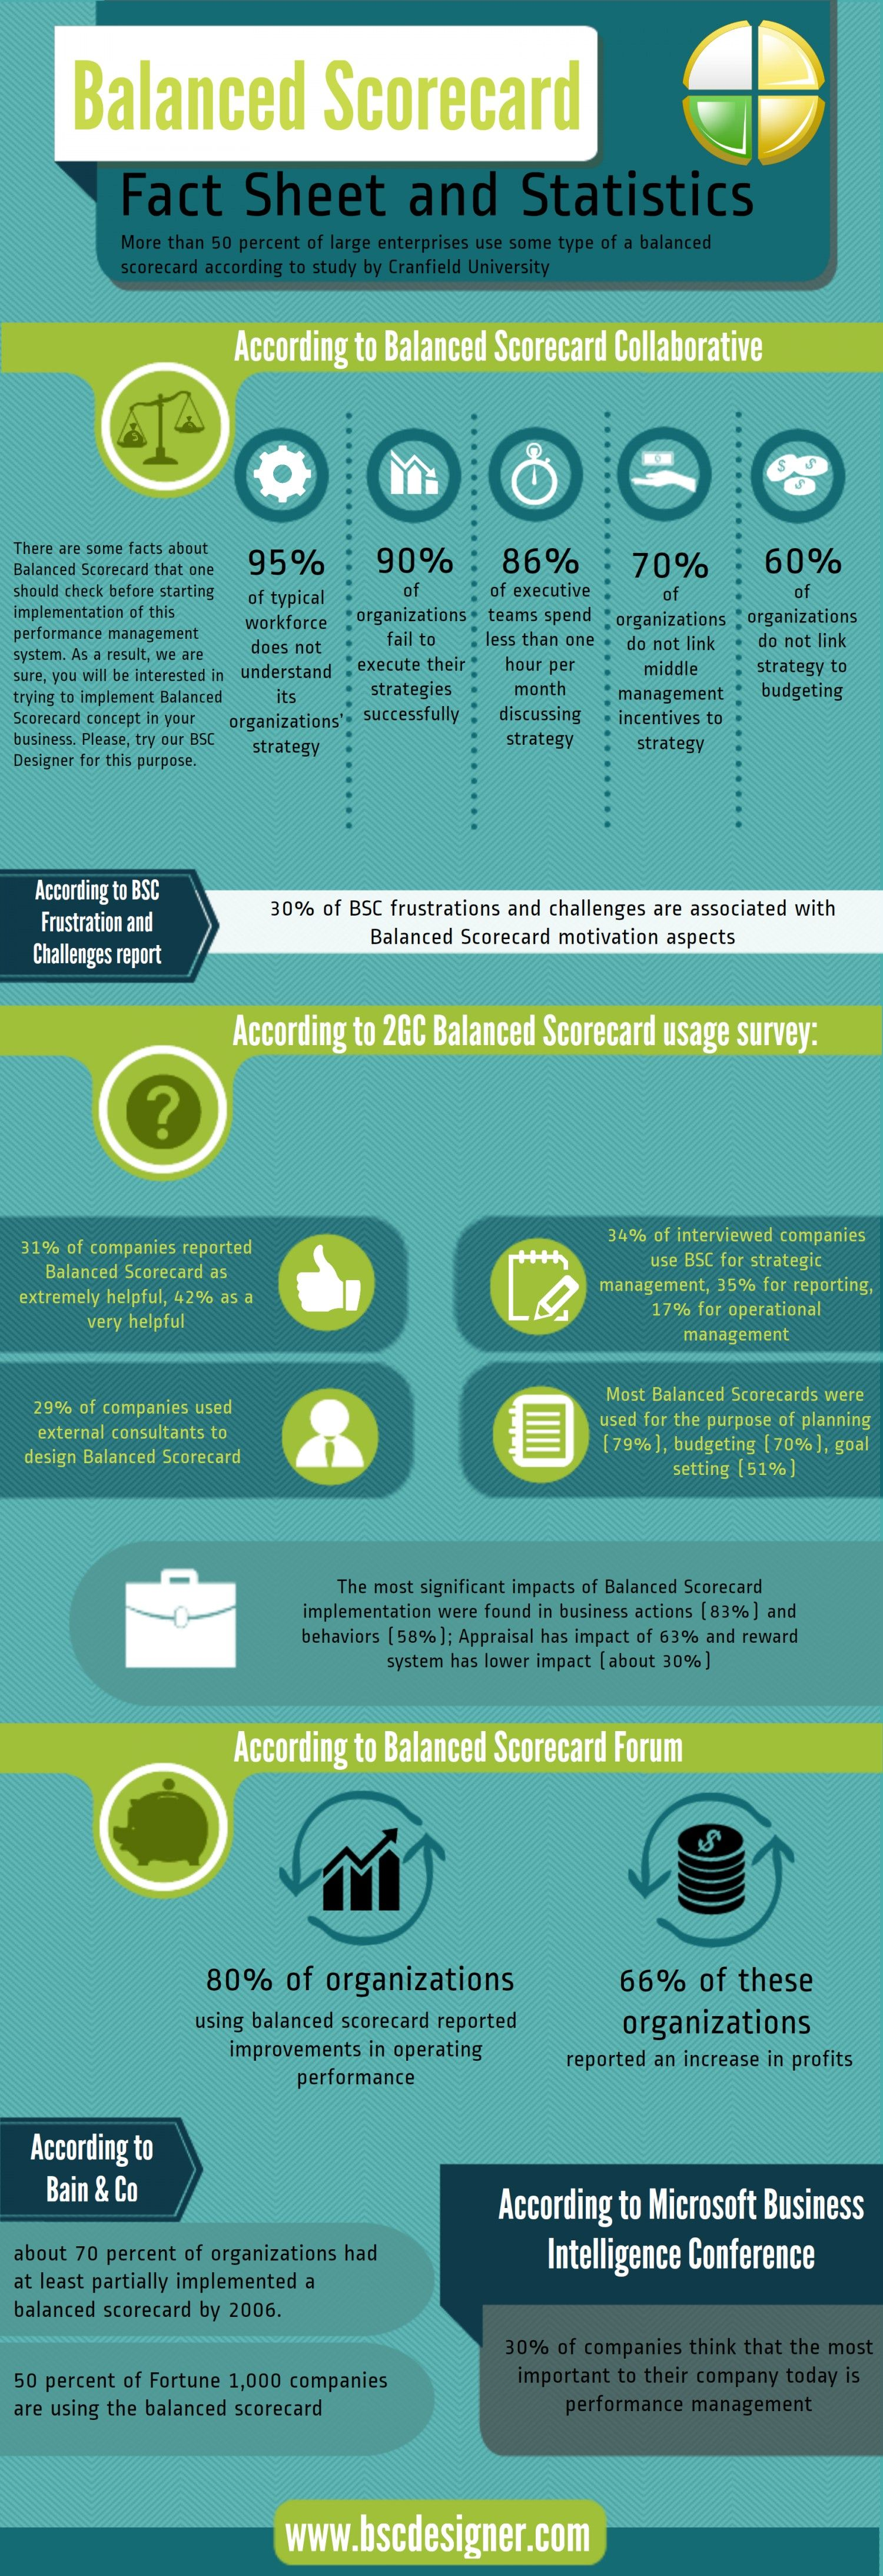 Balanced Scorecard Facts Infographic - More than 50 percent of large enterprises use some type of a Balanced Scorecard. Here are some facts about Balanced Scorecard that one should check before starting implementation of this performance management system.